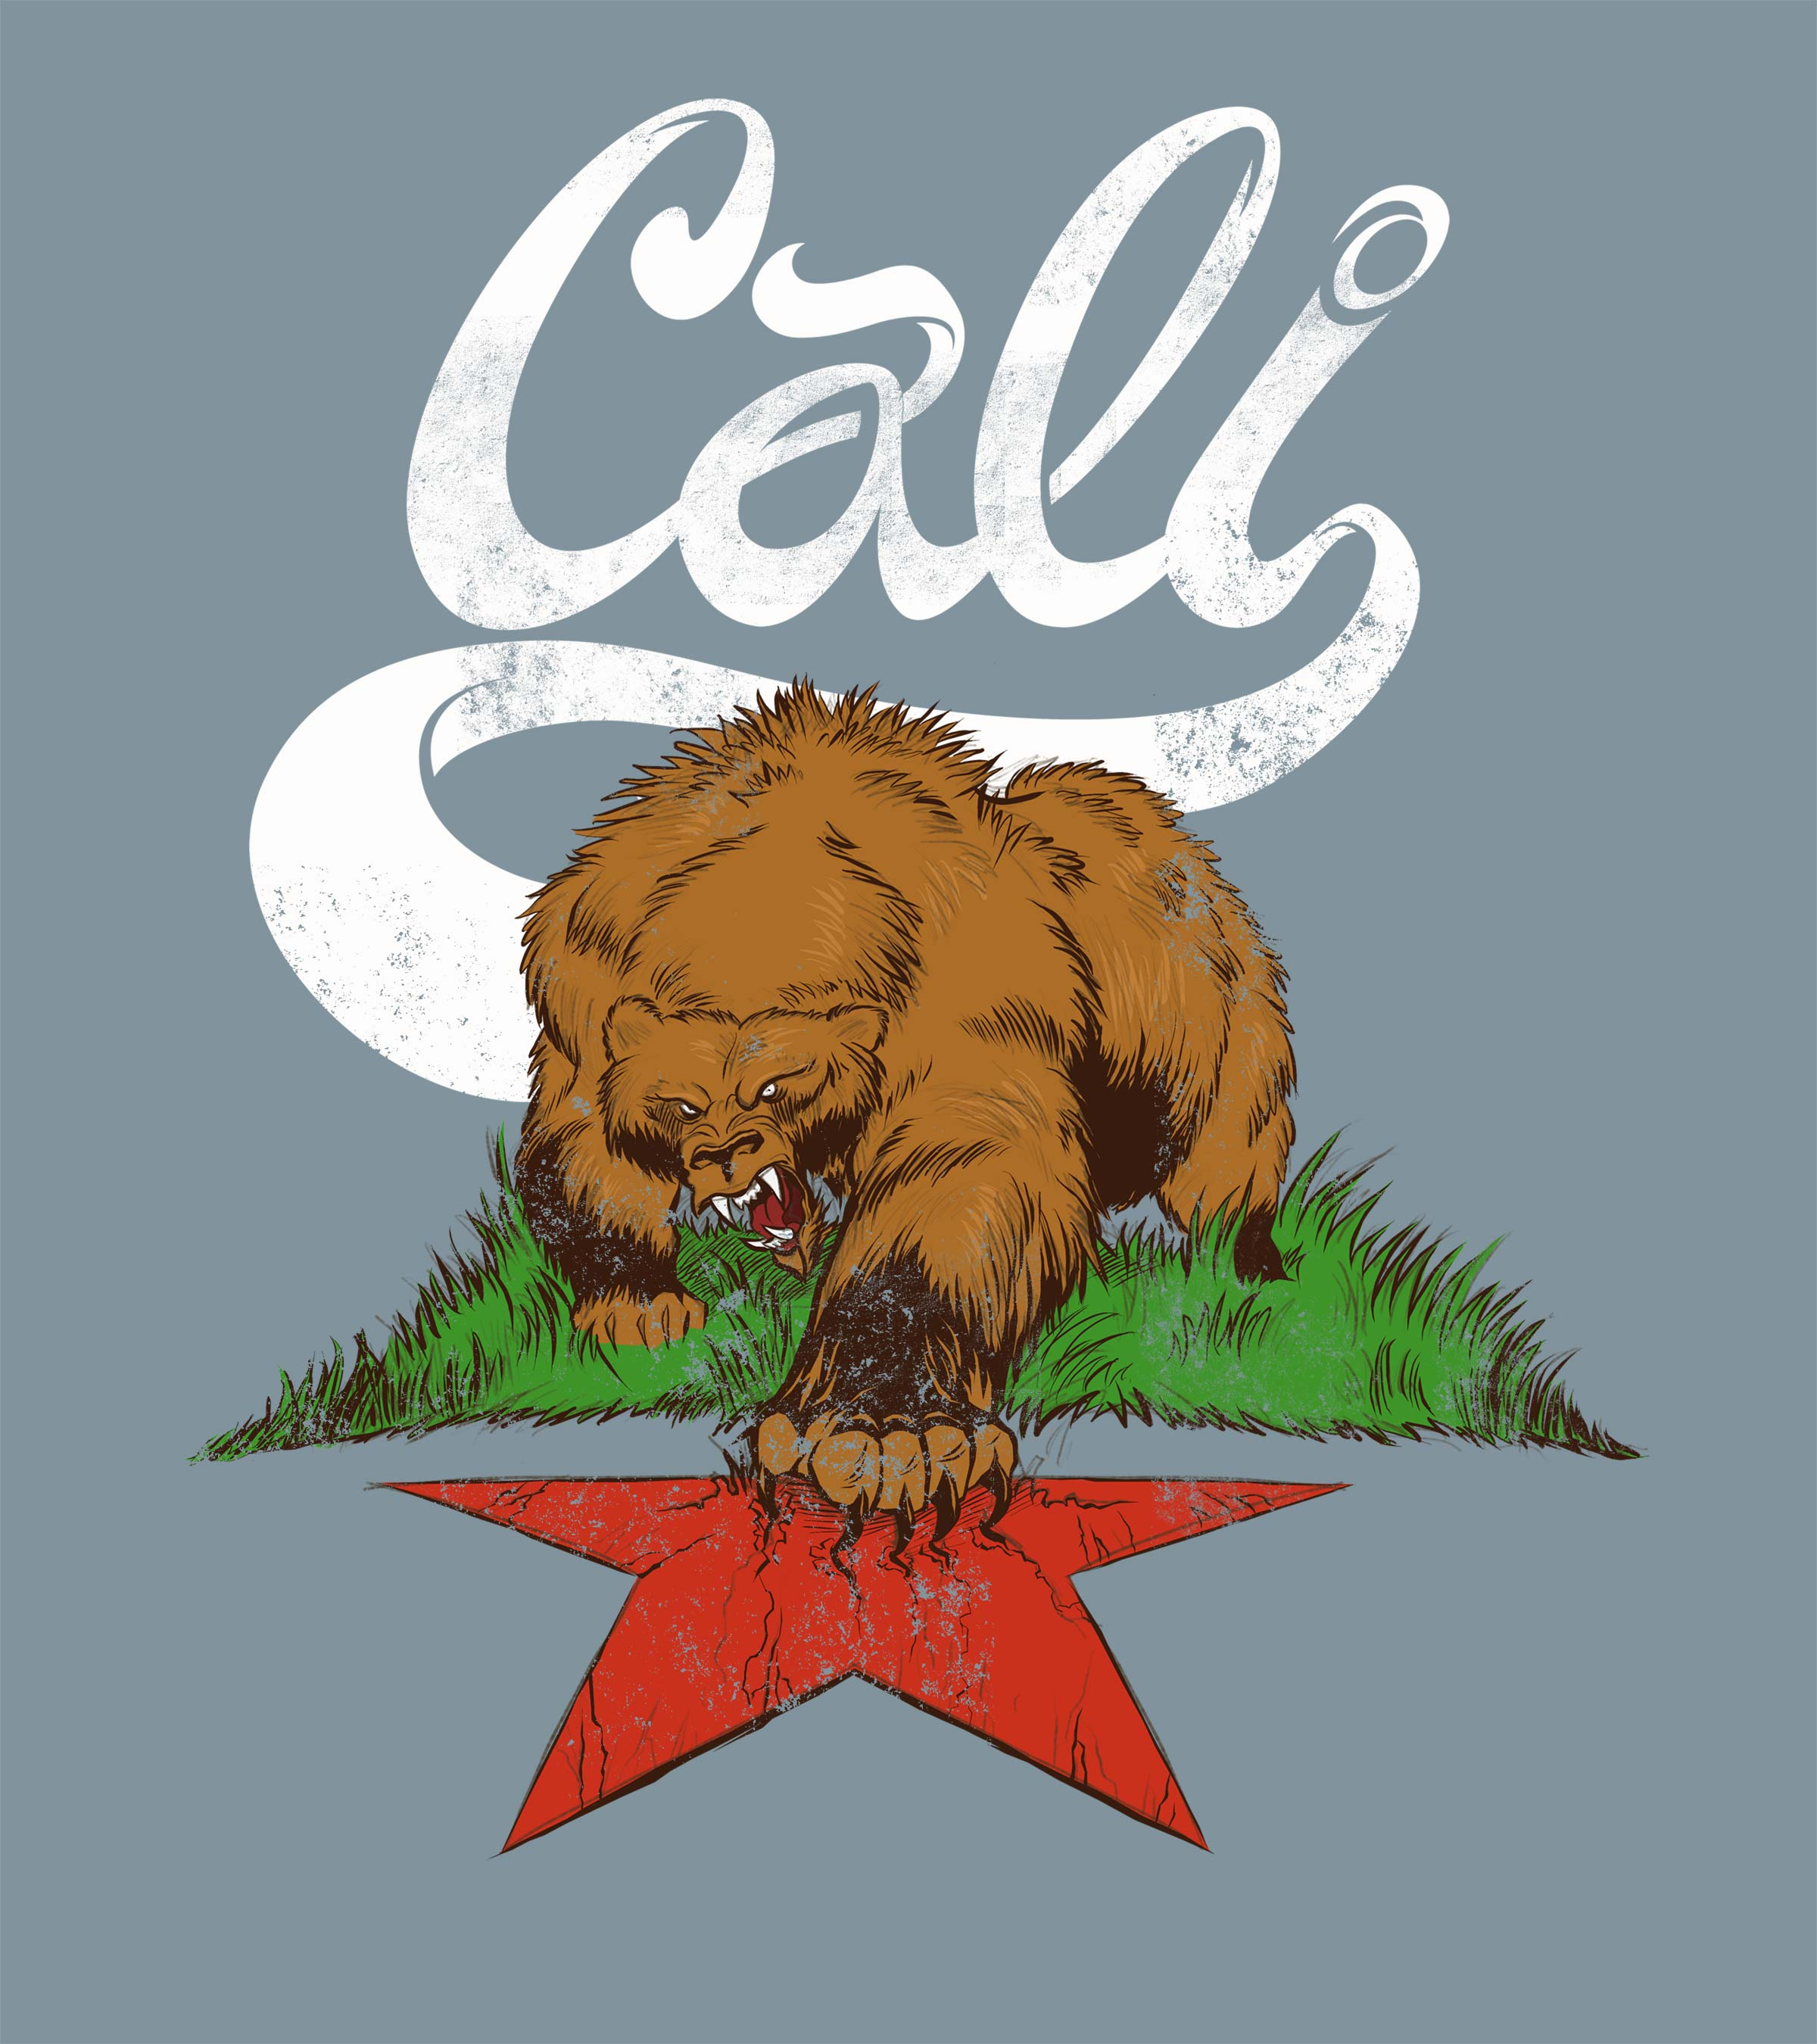 KillaGrizzly3sHIRTMOCK